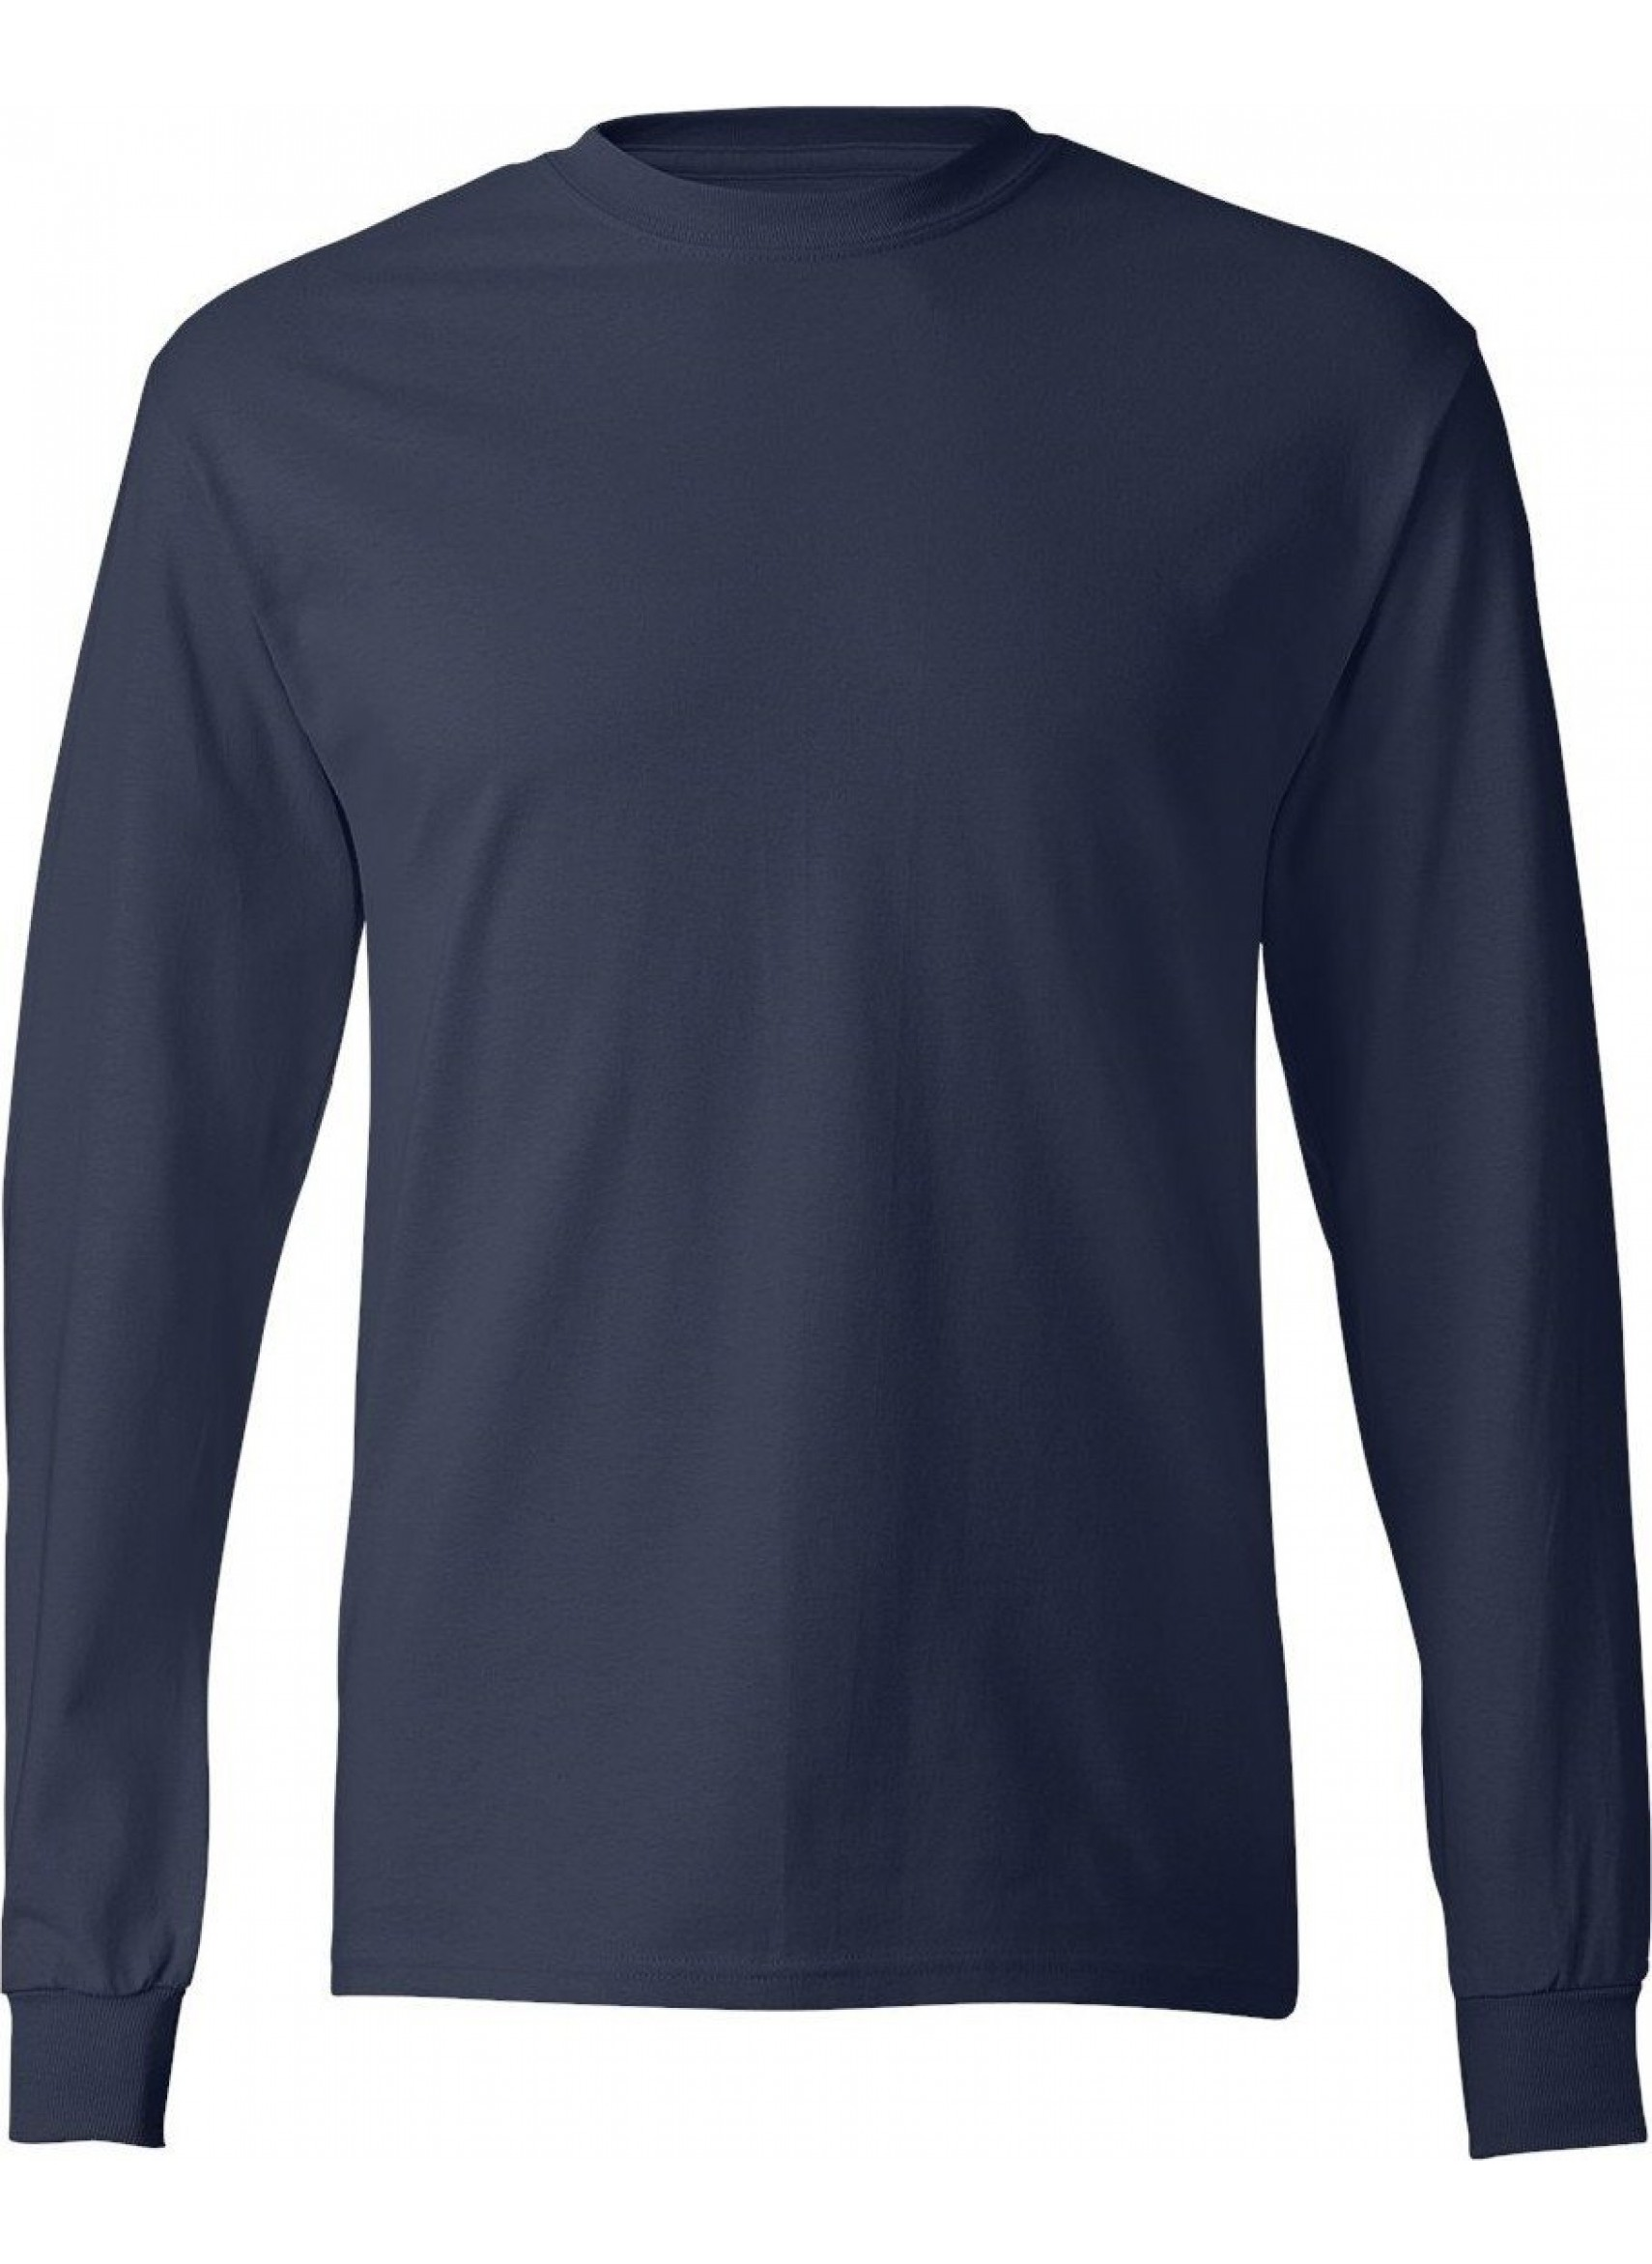 0c9756a58ea Memorial Day Savings! 15% off sitewide with code USA at checkout! Hanes  Men s Tee ComfortSoft Long Sleeve T-Shirt ...